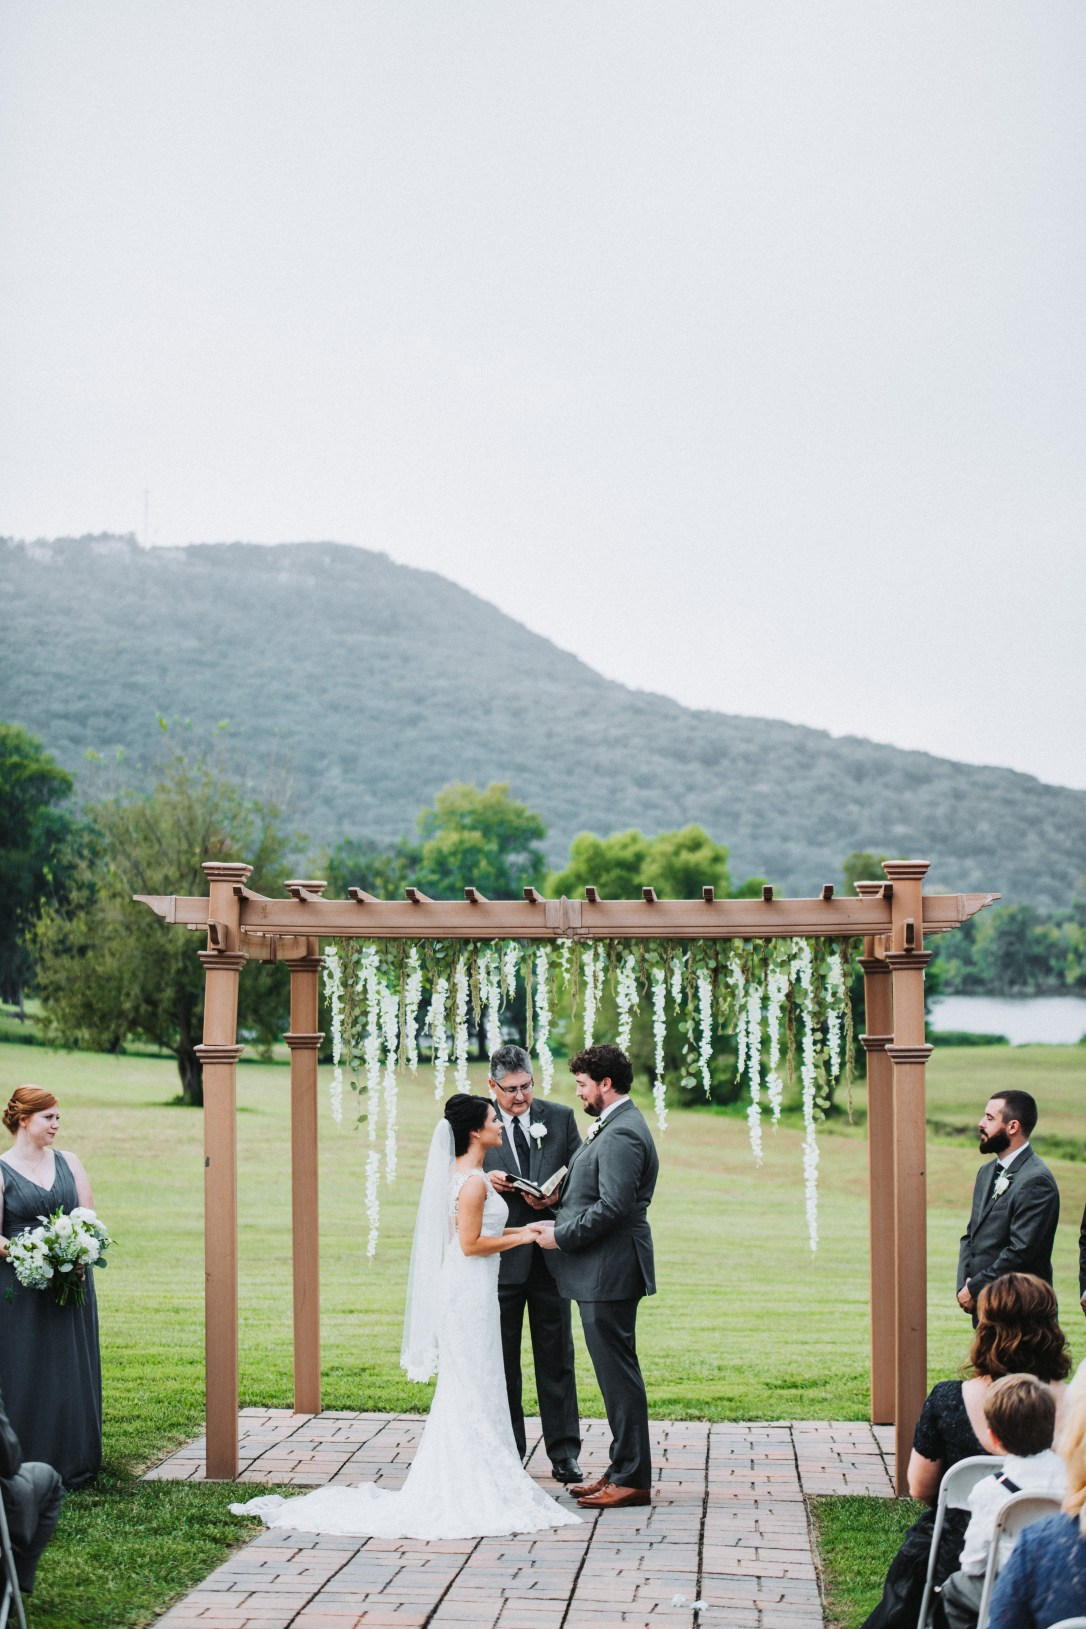 Romantic_Blue_White_Wisteria_Arbor_Tennessee_River_Place_Chattanooga_Wedding_Florist_Lang_Floral_Designs_4.jpg